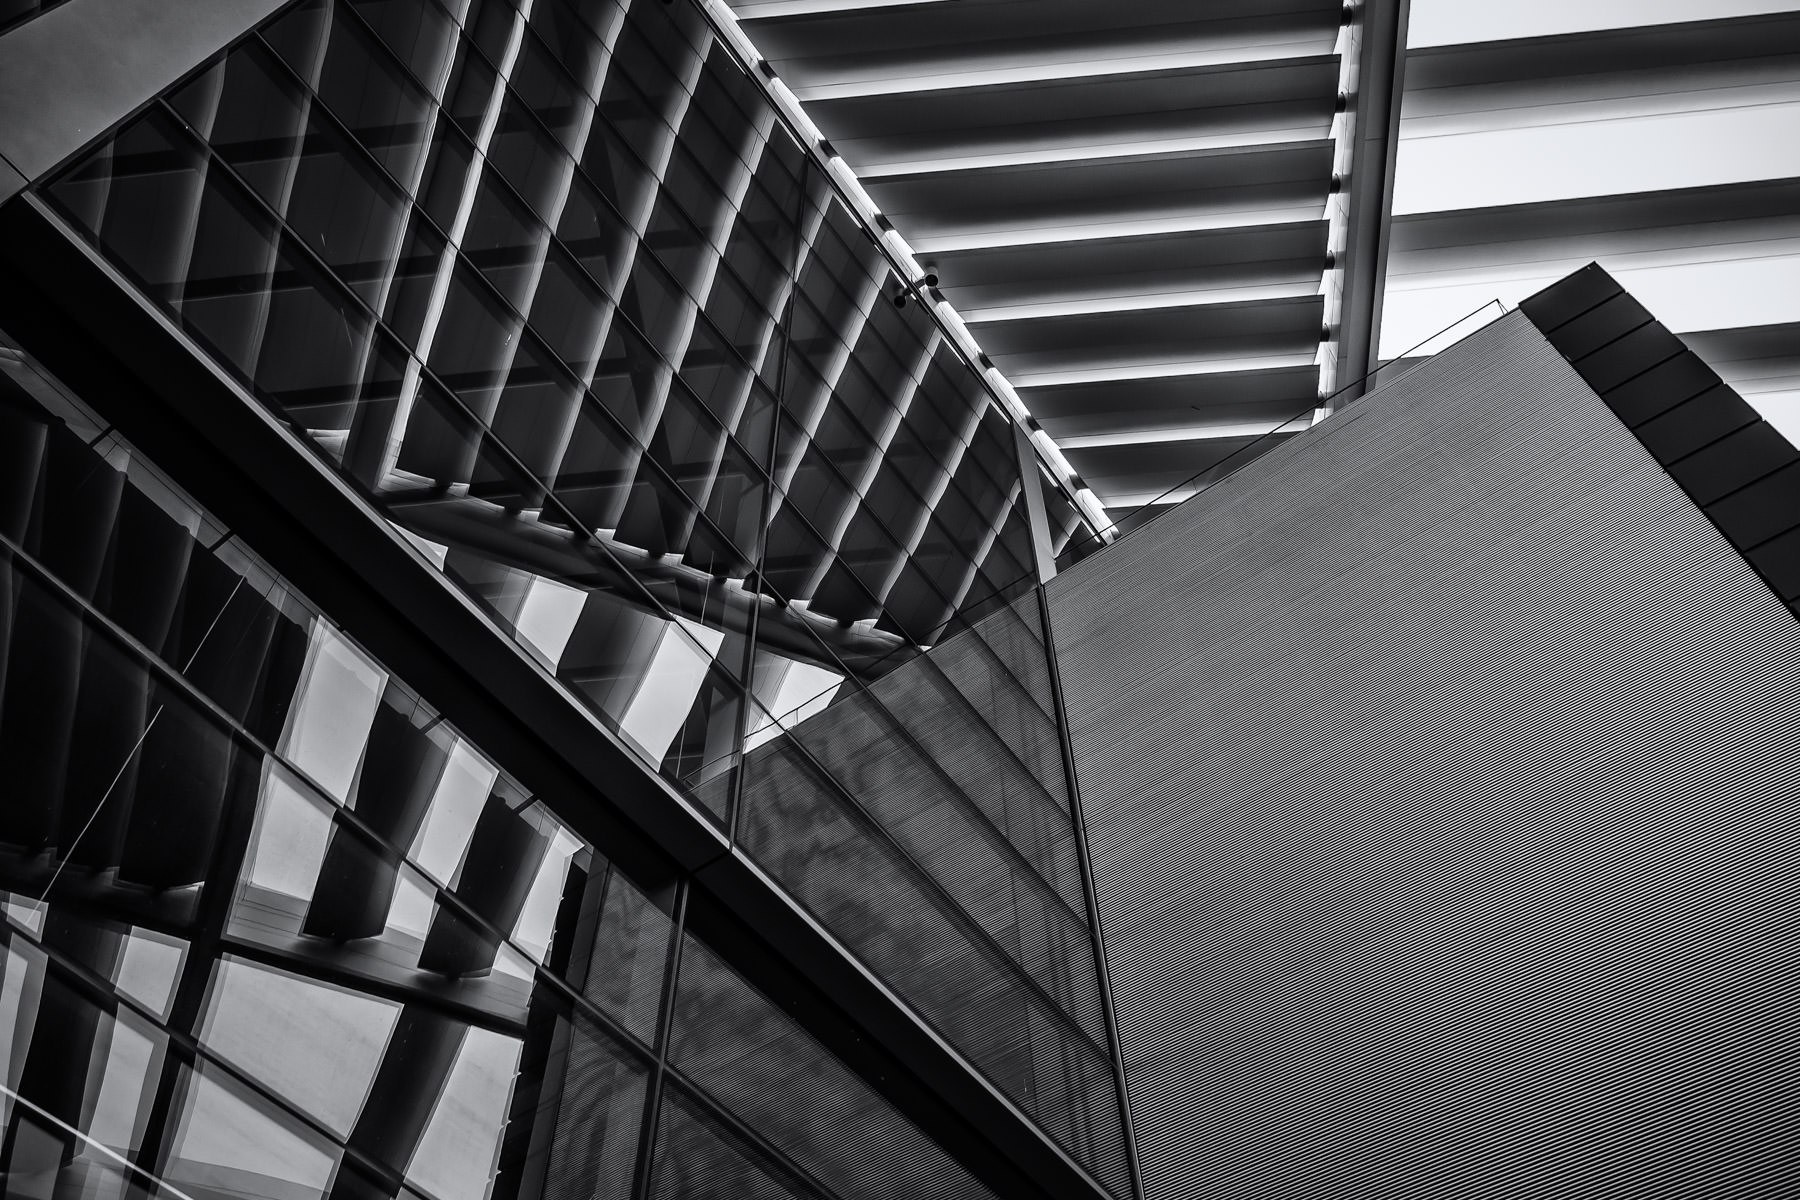 Architectural detail of Dallas' Winspear Opera House at the AT&T Performing Arts Center.